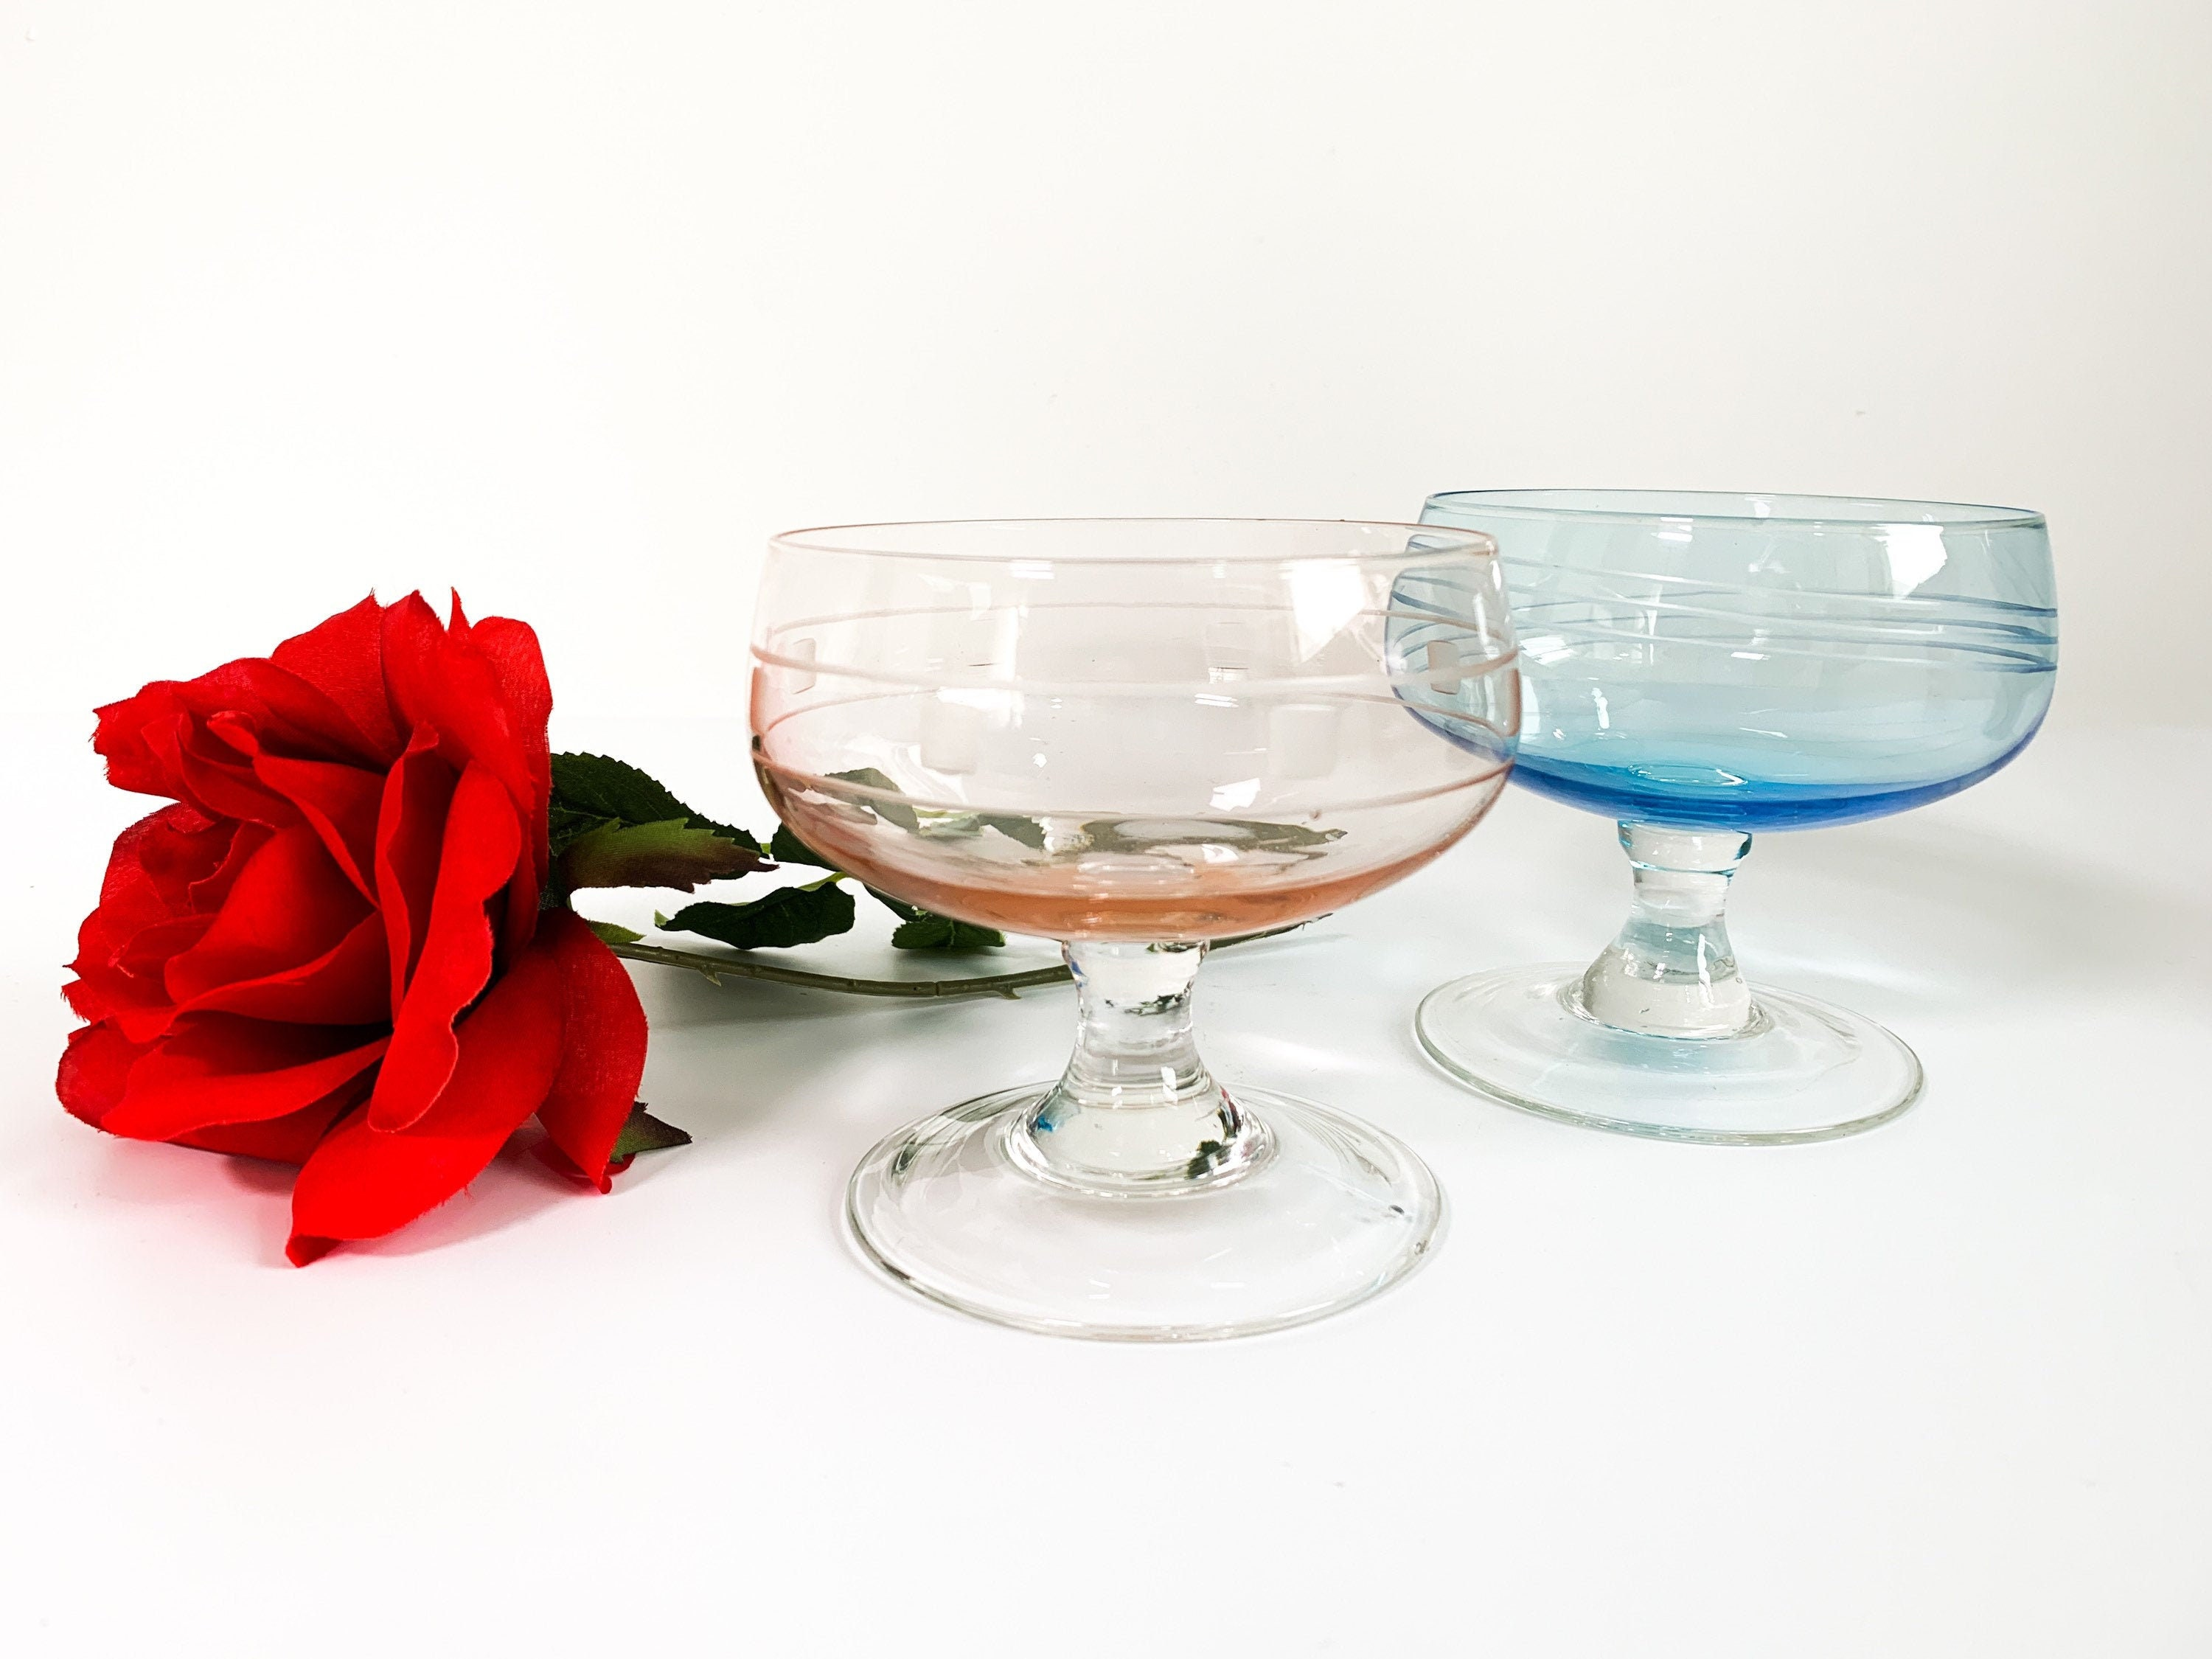 Pair Of Champagne Coupes Two Vintage His Hers Glasses 2 Blue And Pink Large Etched Bowl Clear Stem Glasses Etched Geometric On Bowls